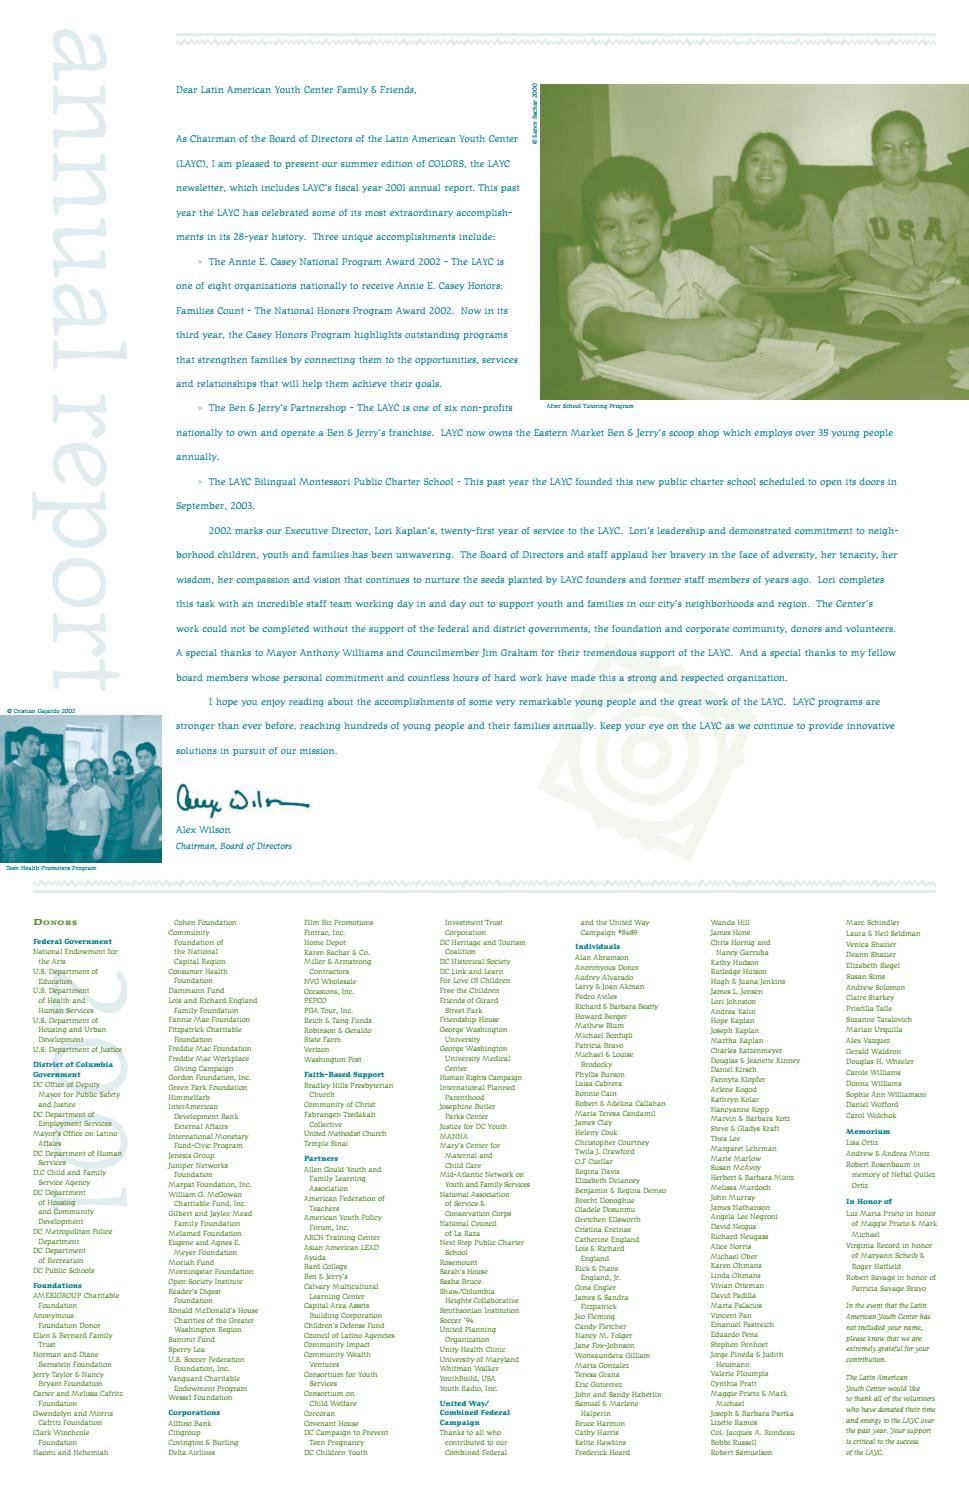 LAYC 2001 Annual Report by Latin American Youth Center - issuu